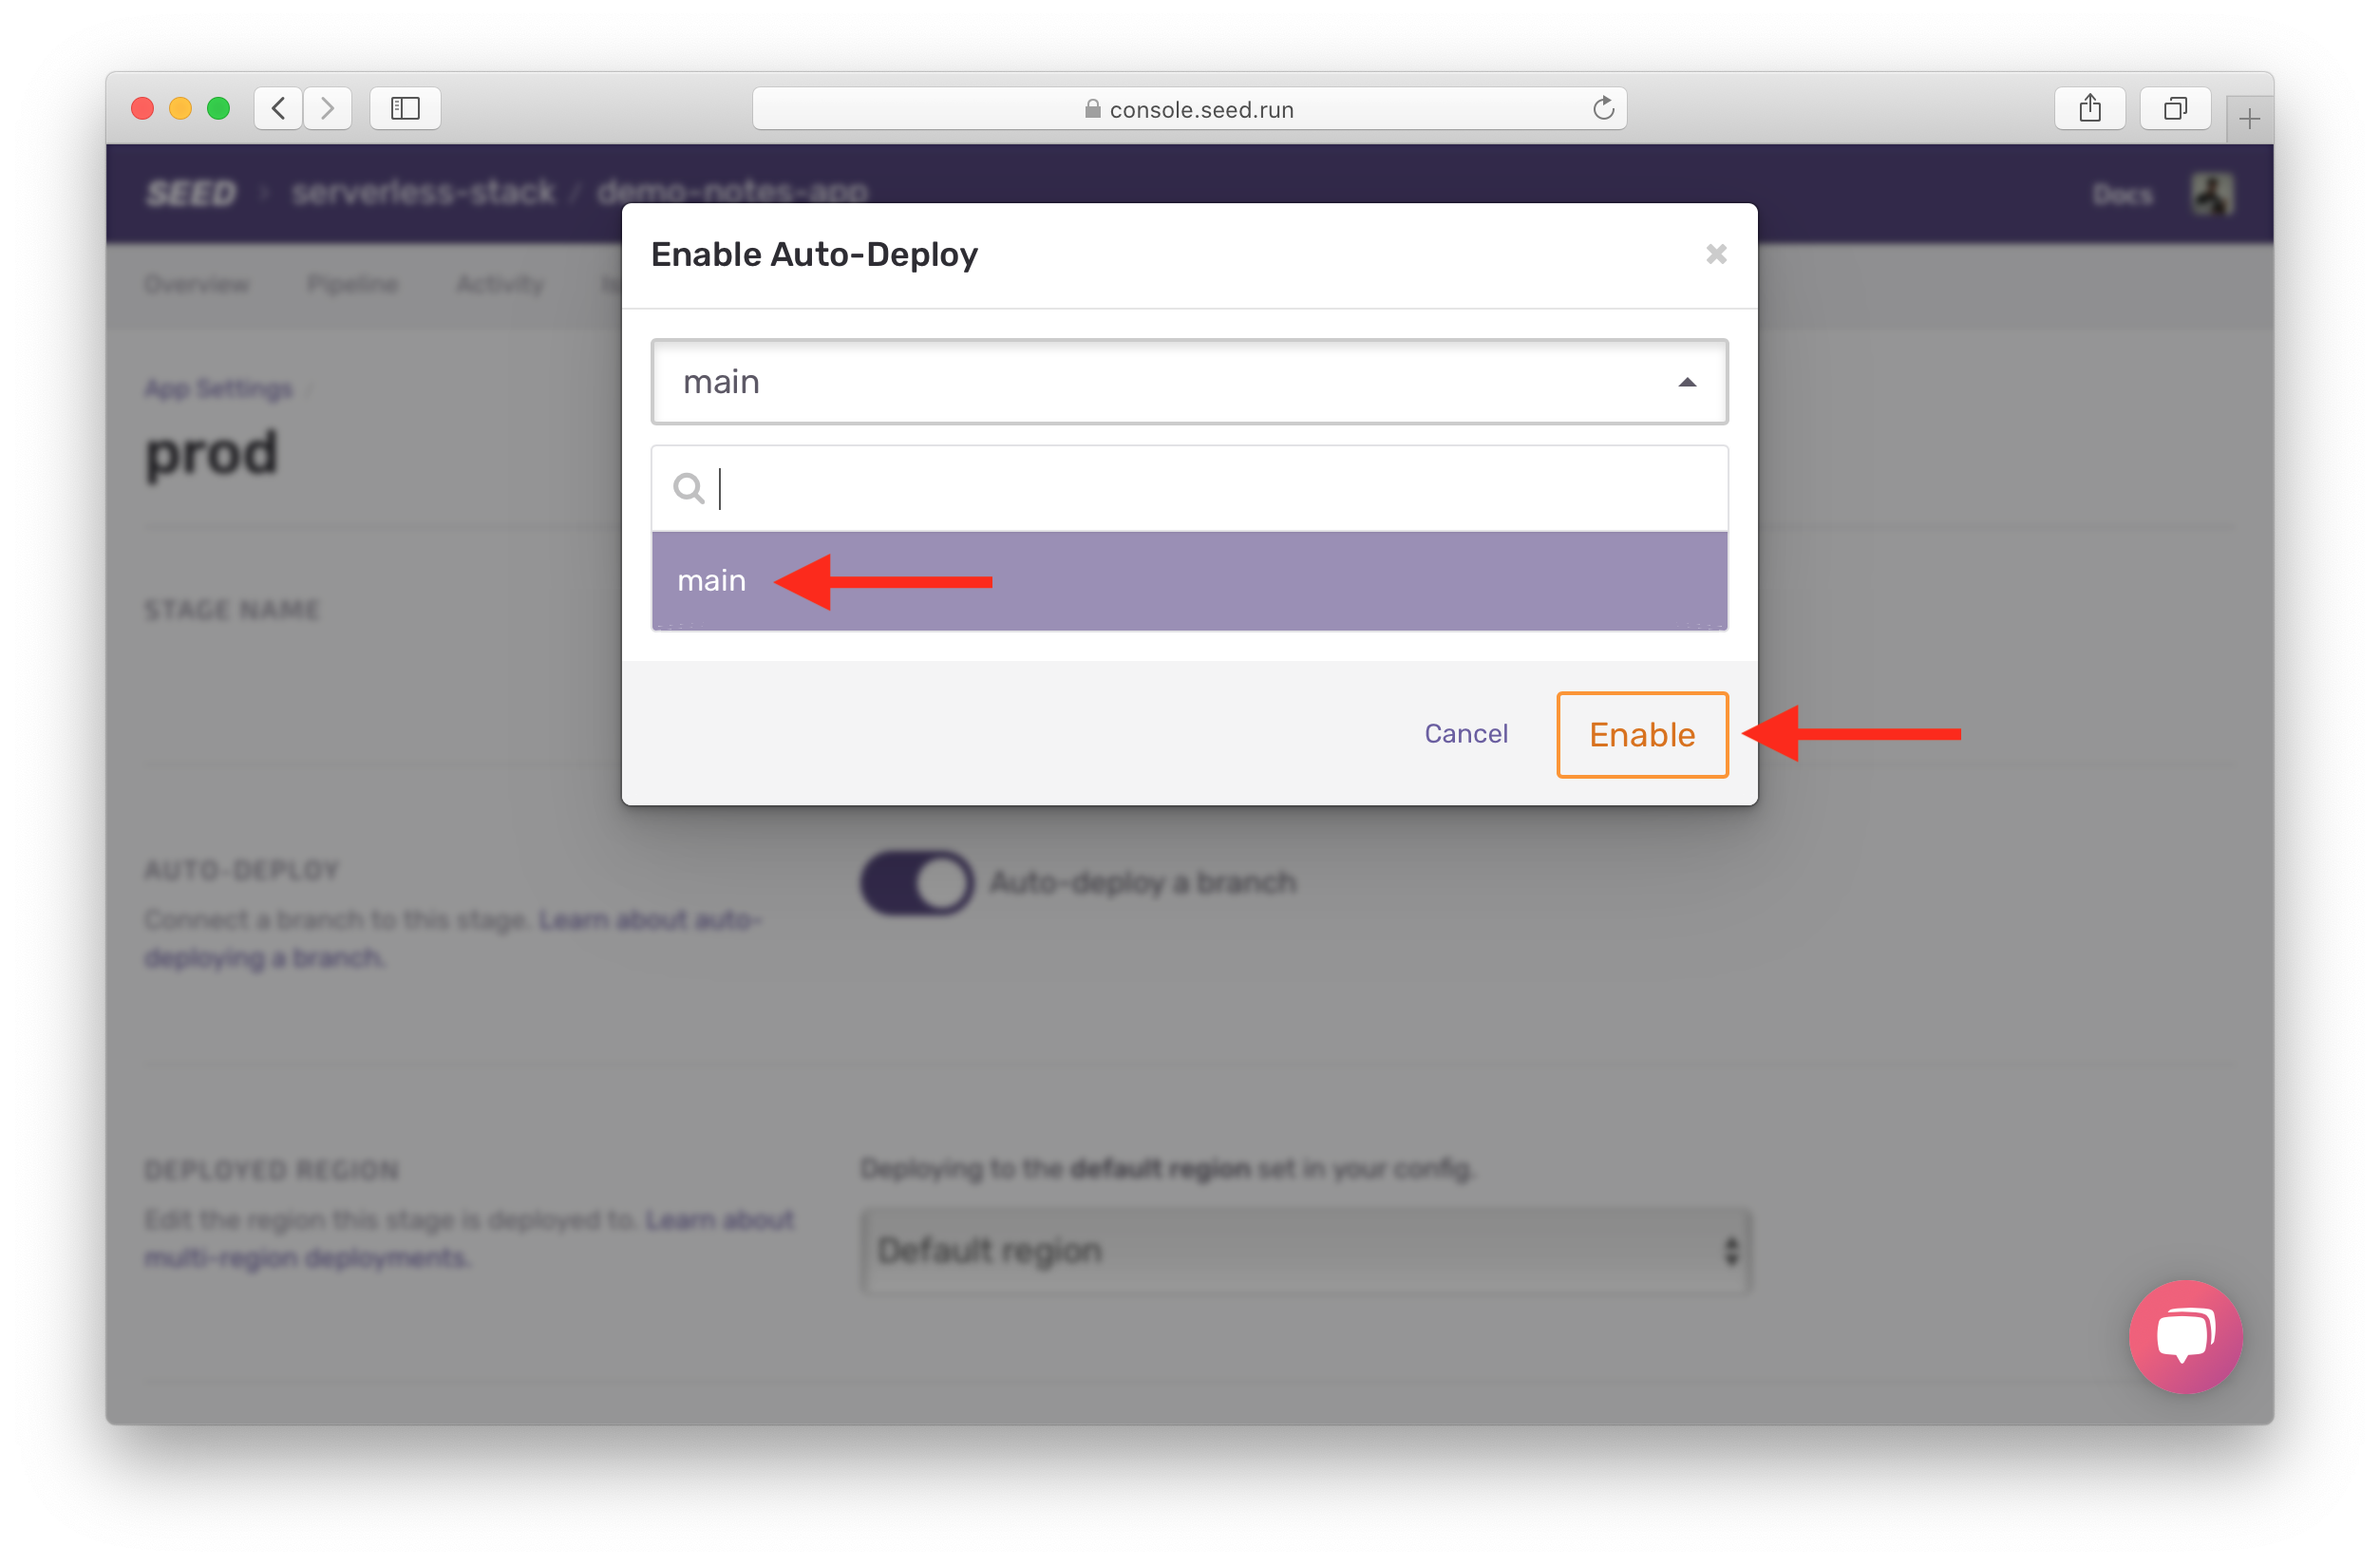 Select branch to auto-deploy to prod